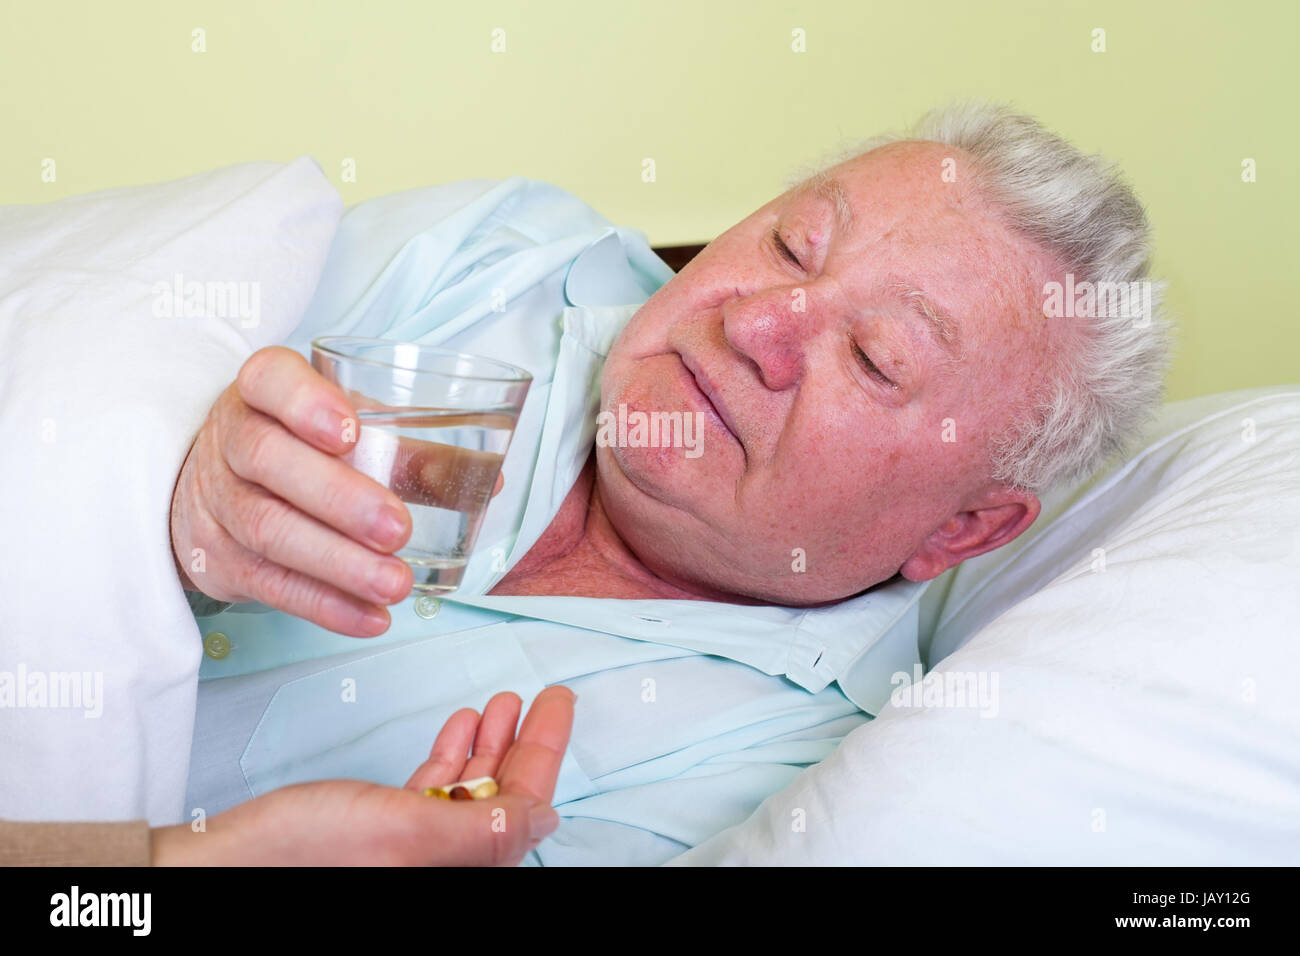 Picture of a sick old man in bed, his caregiver giving him medicine - Stock Image